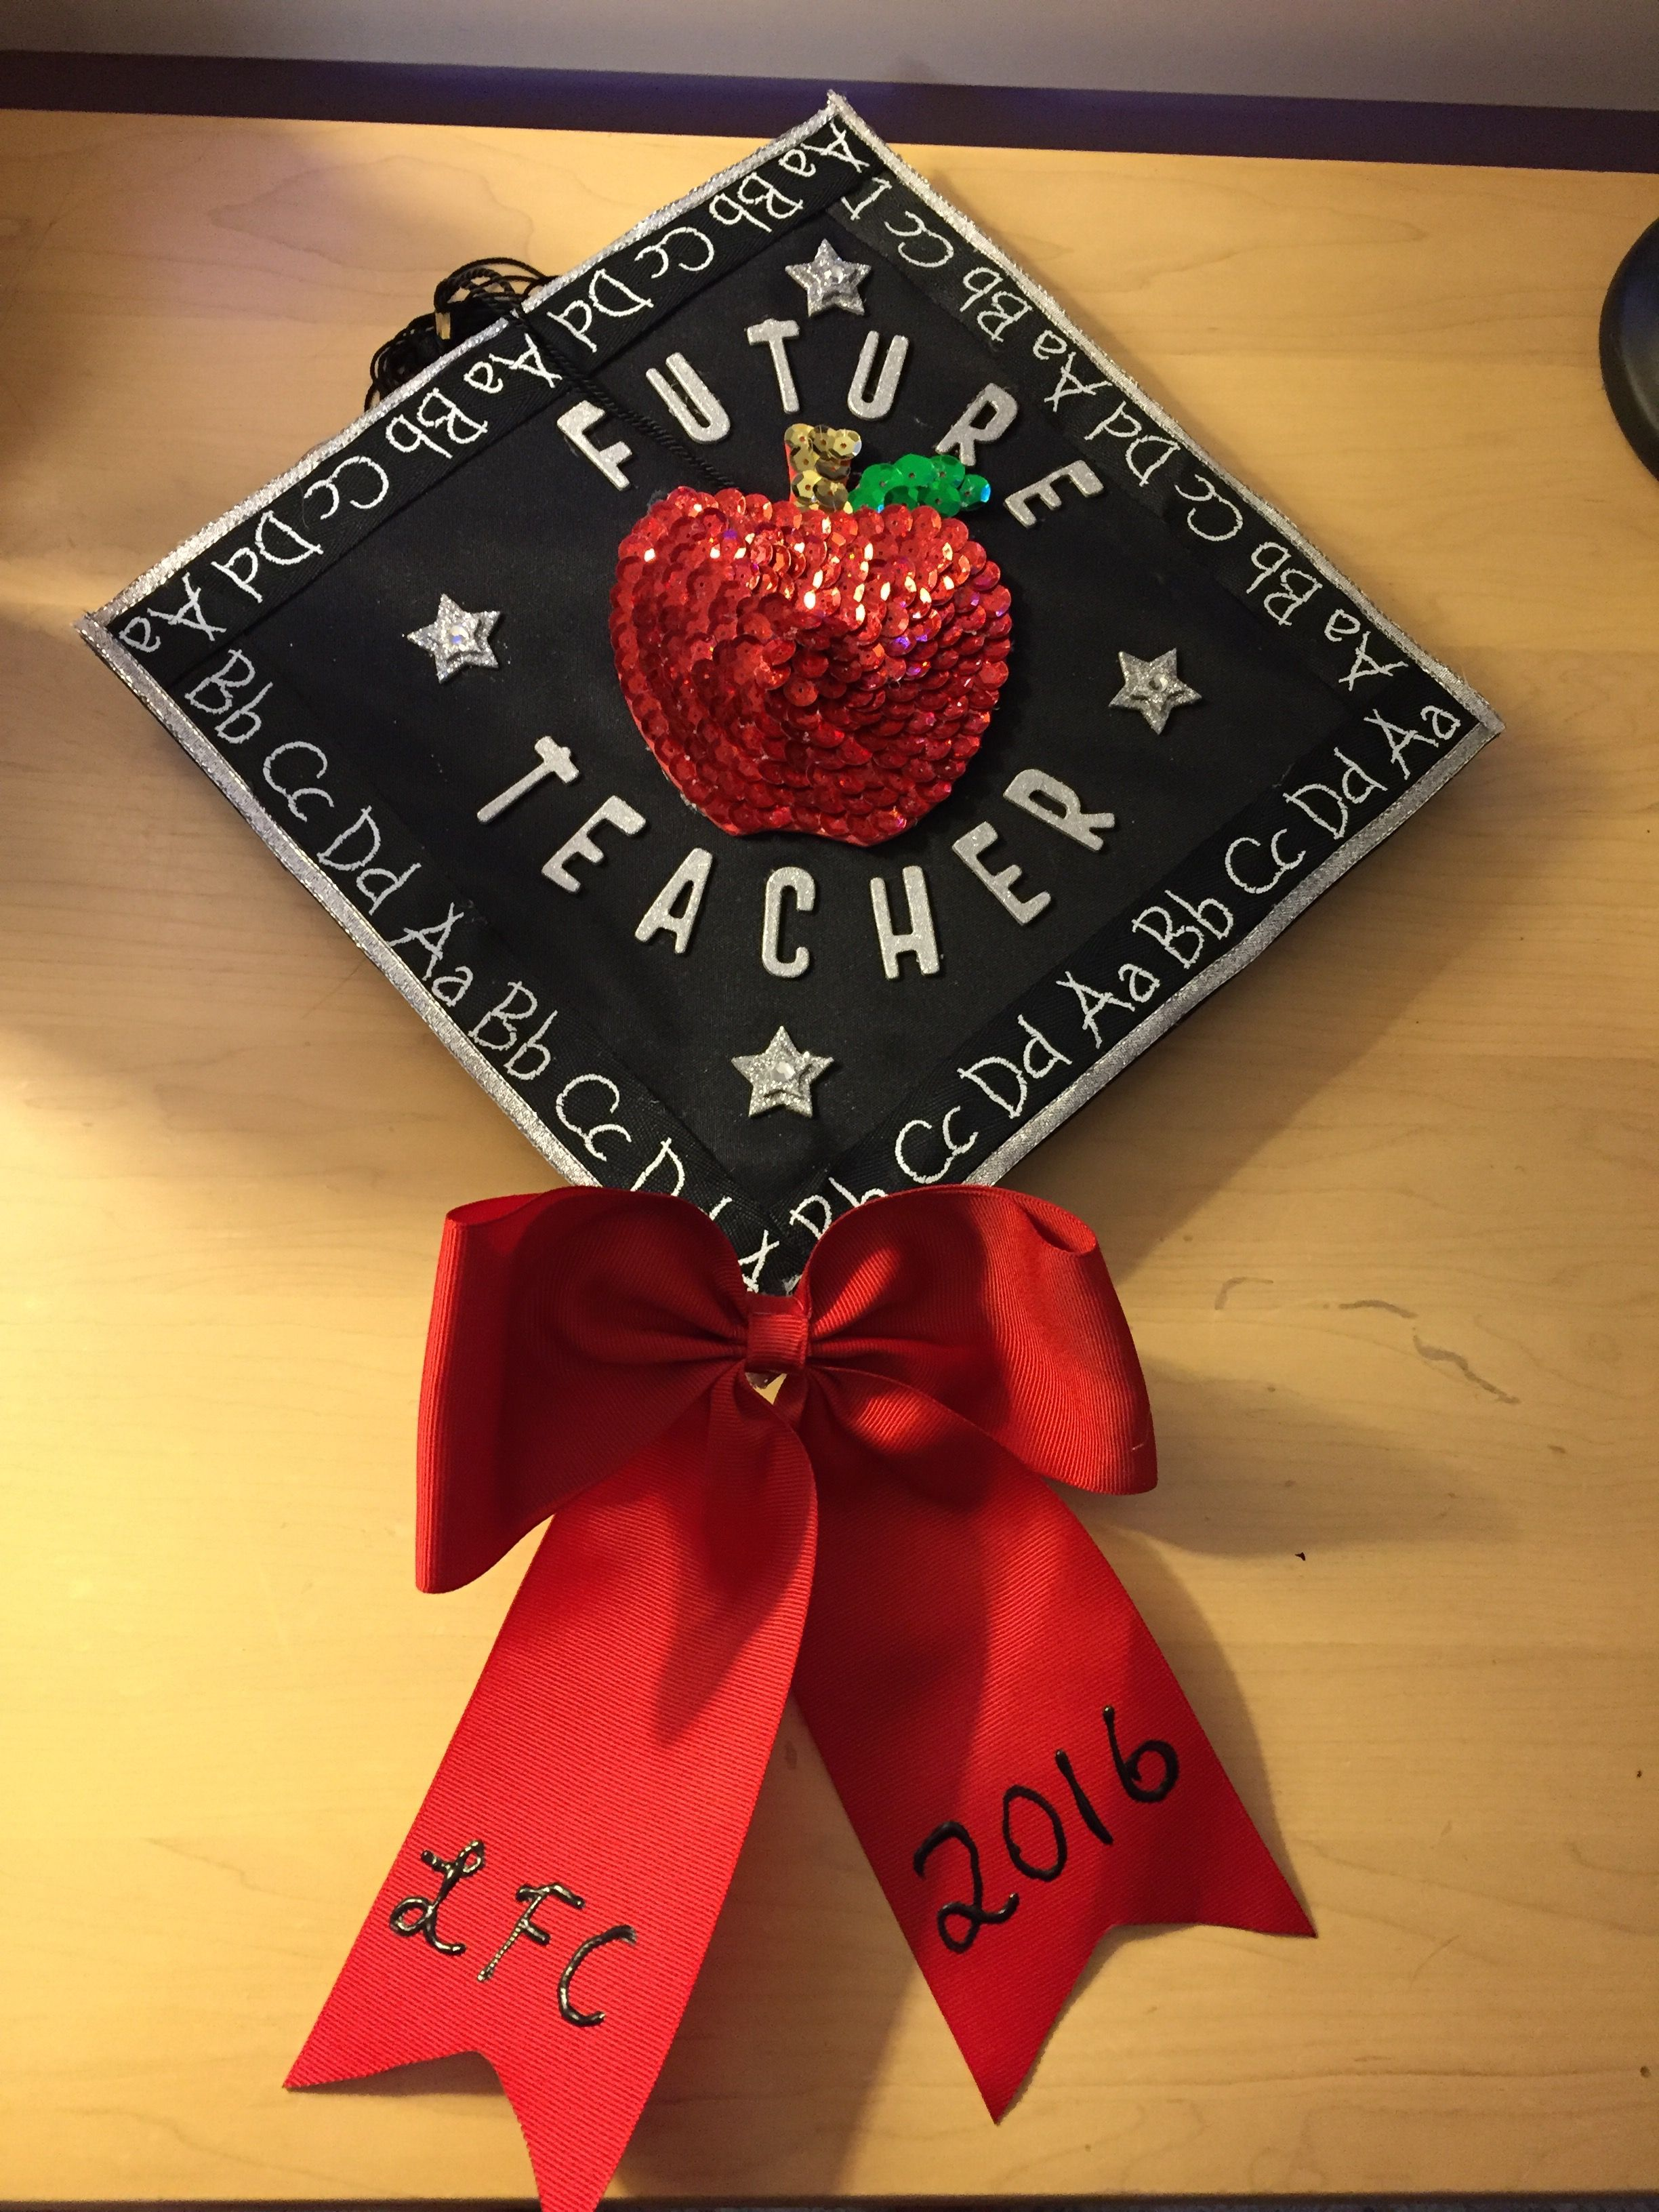 Decorating graduation cap ideas for teachers - Decorated My Cap For Graduation So Excited To Enter The Real World As An Elementary